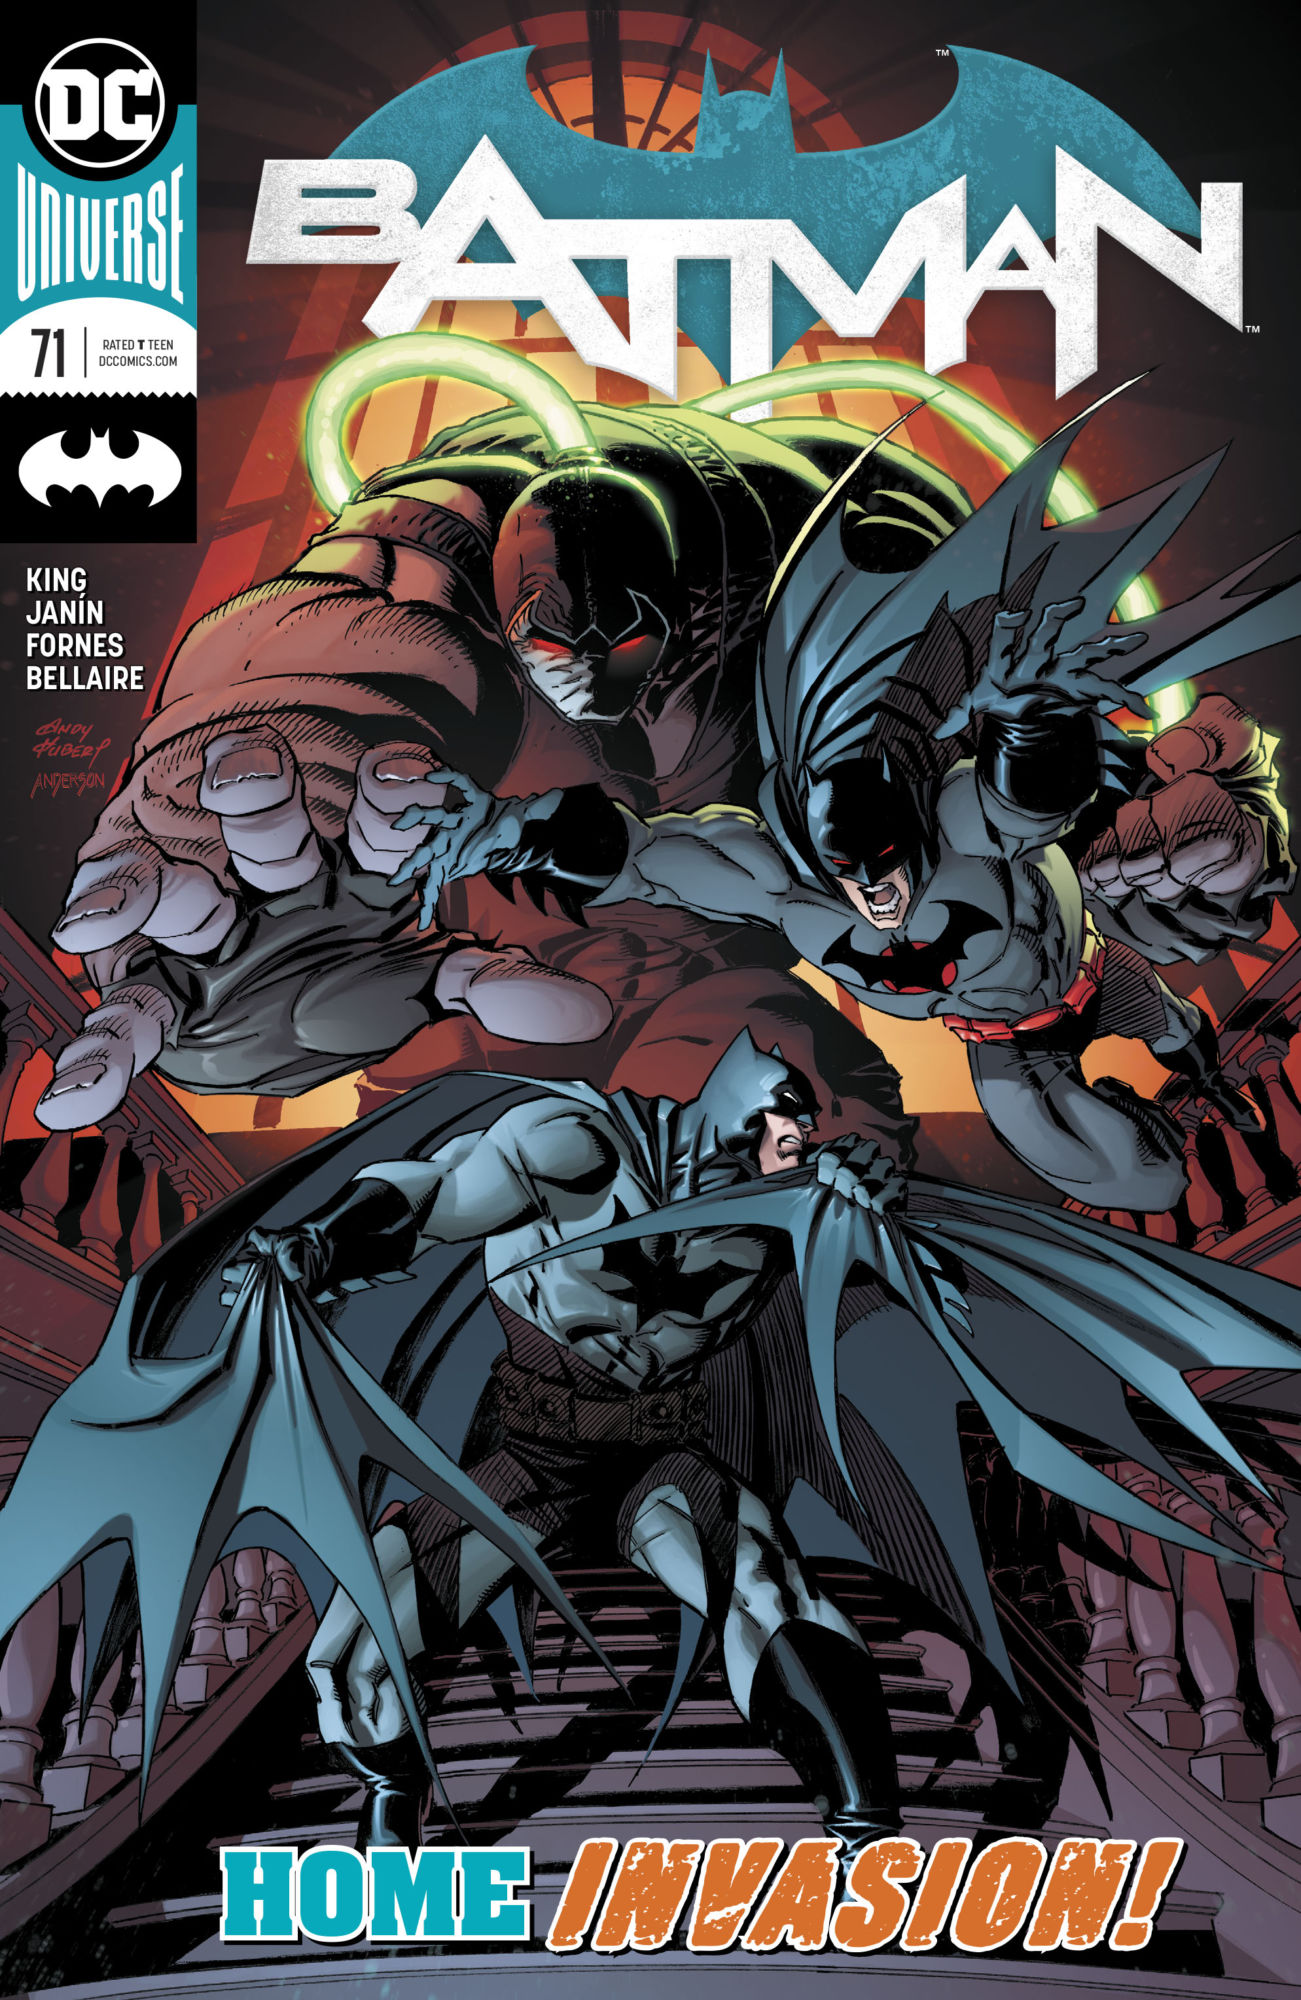 DC Comics and Warners to Change Batman 'For a Generation or More' – Tom King